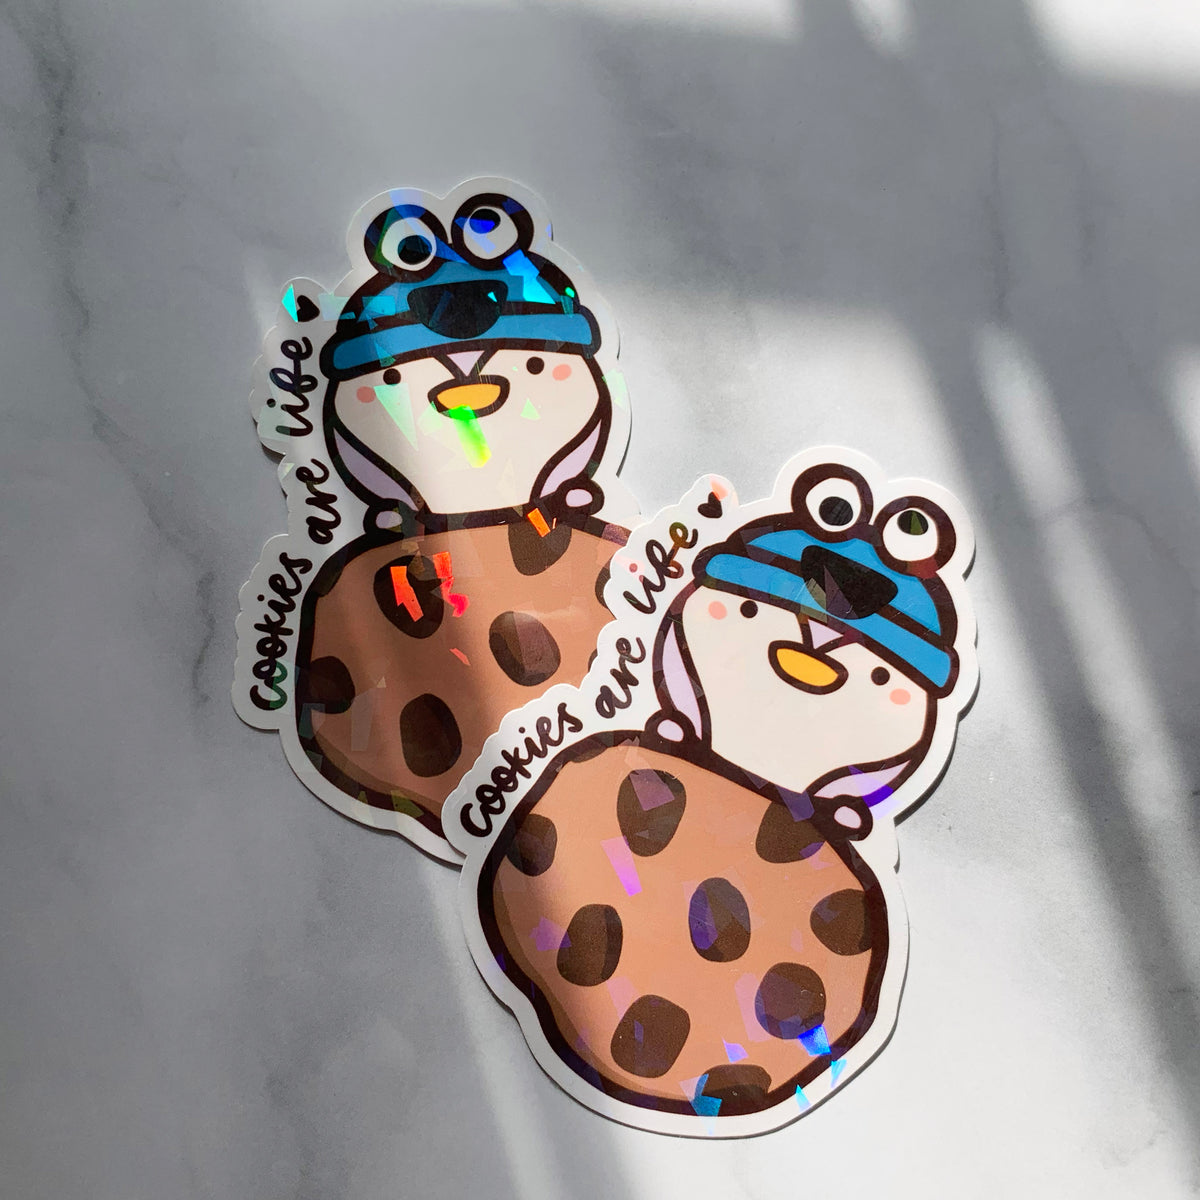 Cookies Are Life Sticker Flake